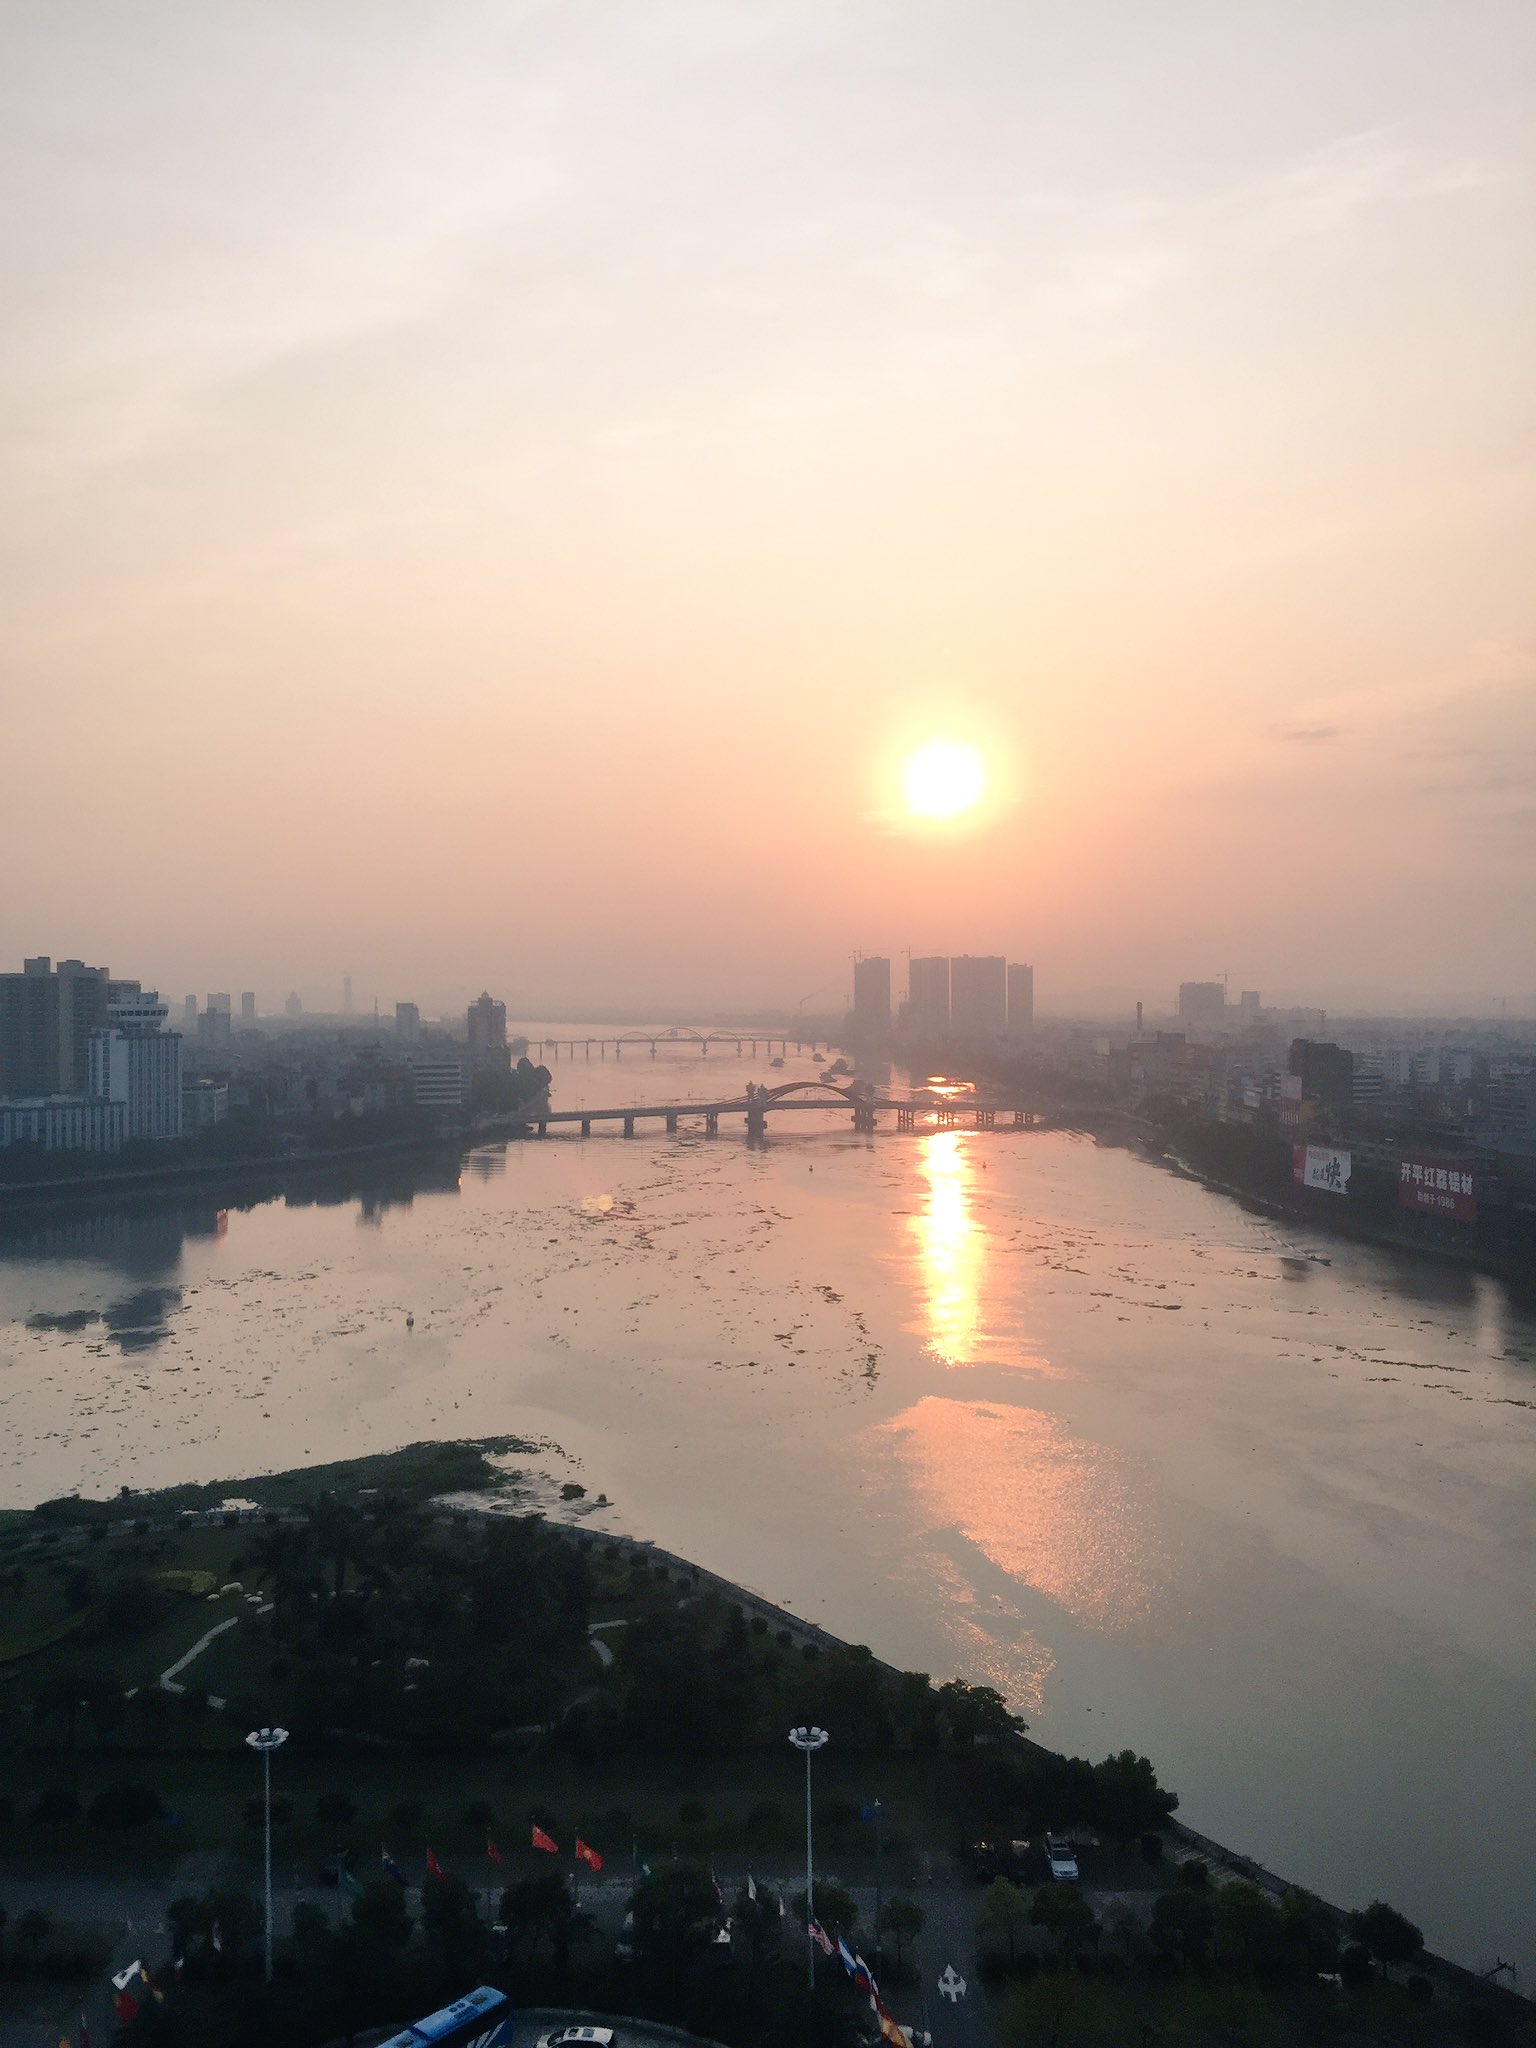 Sunrise over the Tan River, Kaiping city. It's Day 5 and we're off to Taishan. #cahht17 https://t.co/fUUmzFgAyq